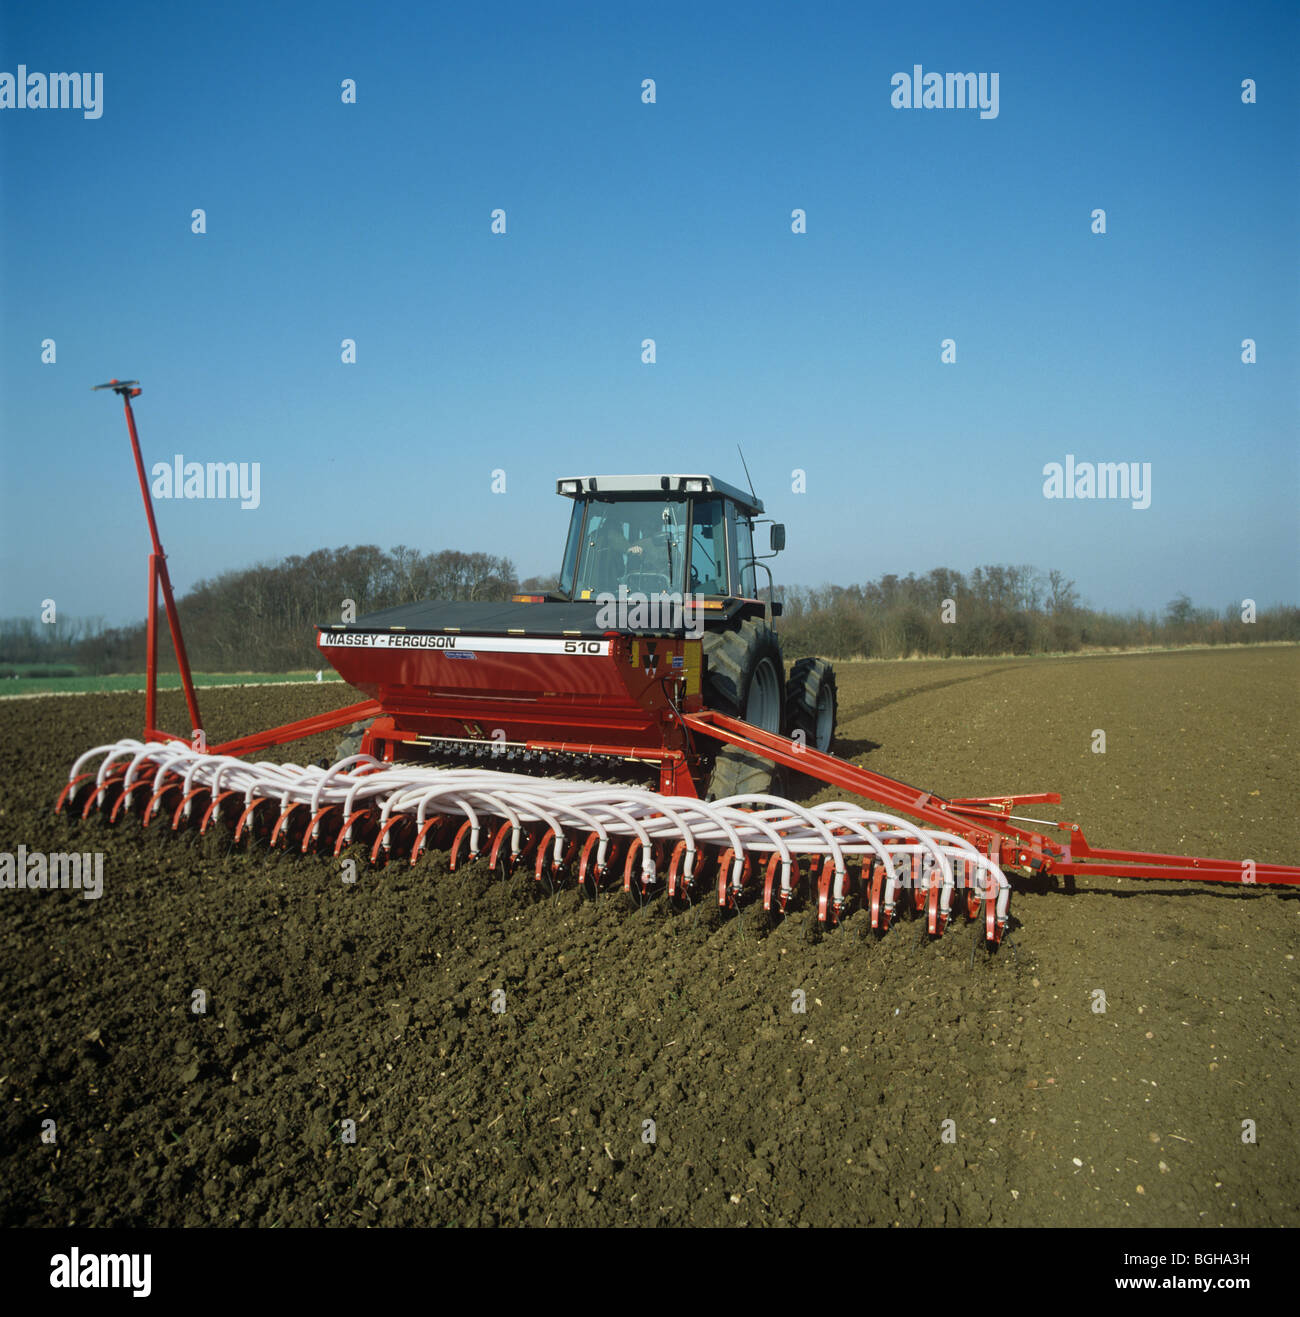 Massey Ferguson pneumatic seed drill planting a cereal crop in early spring - Stock Image